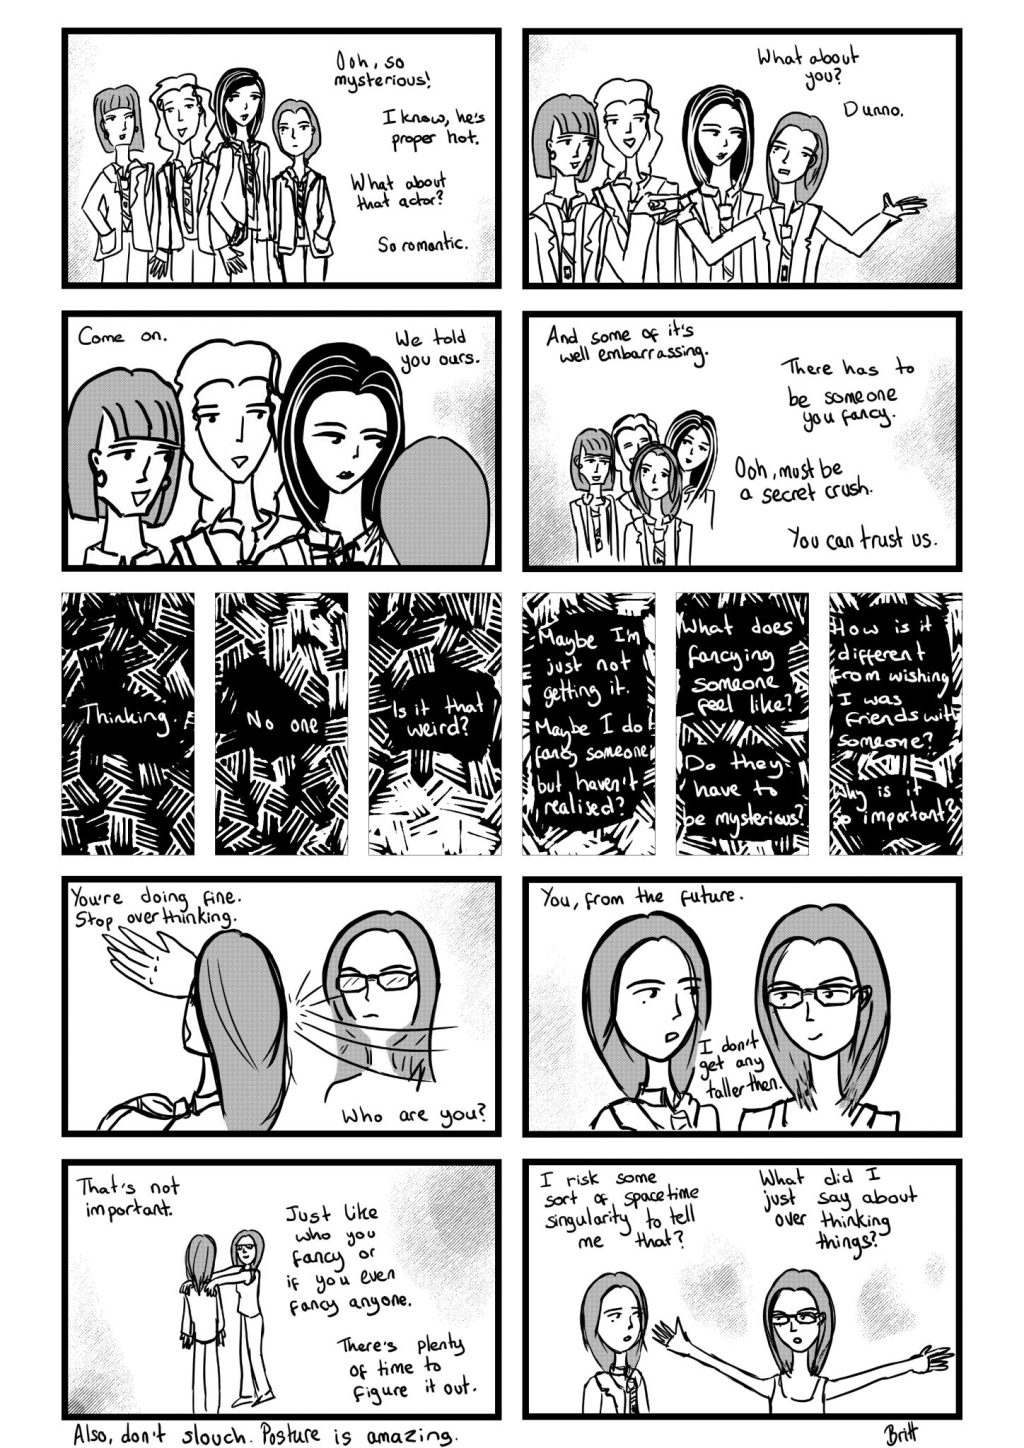 It's Fine comic, a comic about trying to figure out life as a teenager and overthinking things.